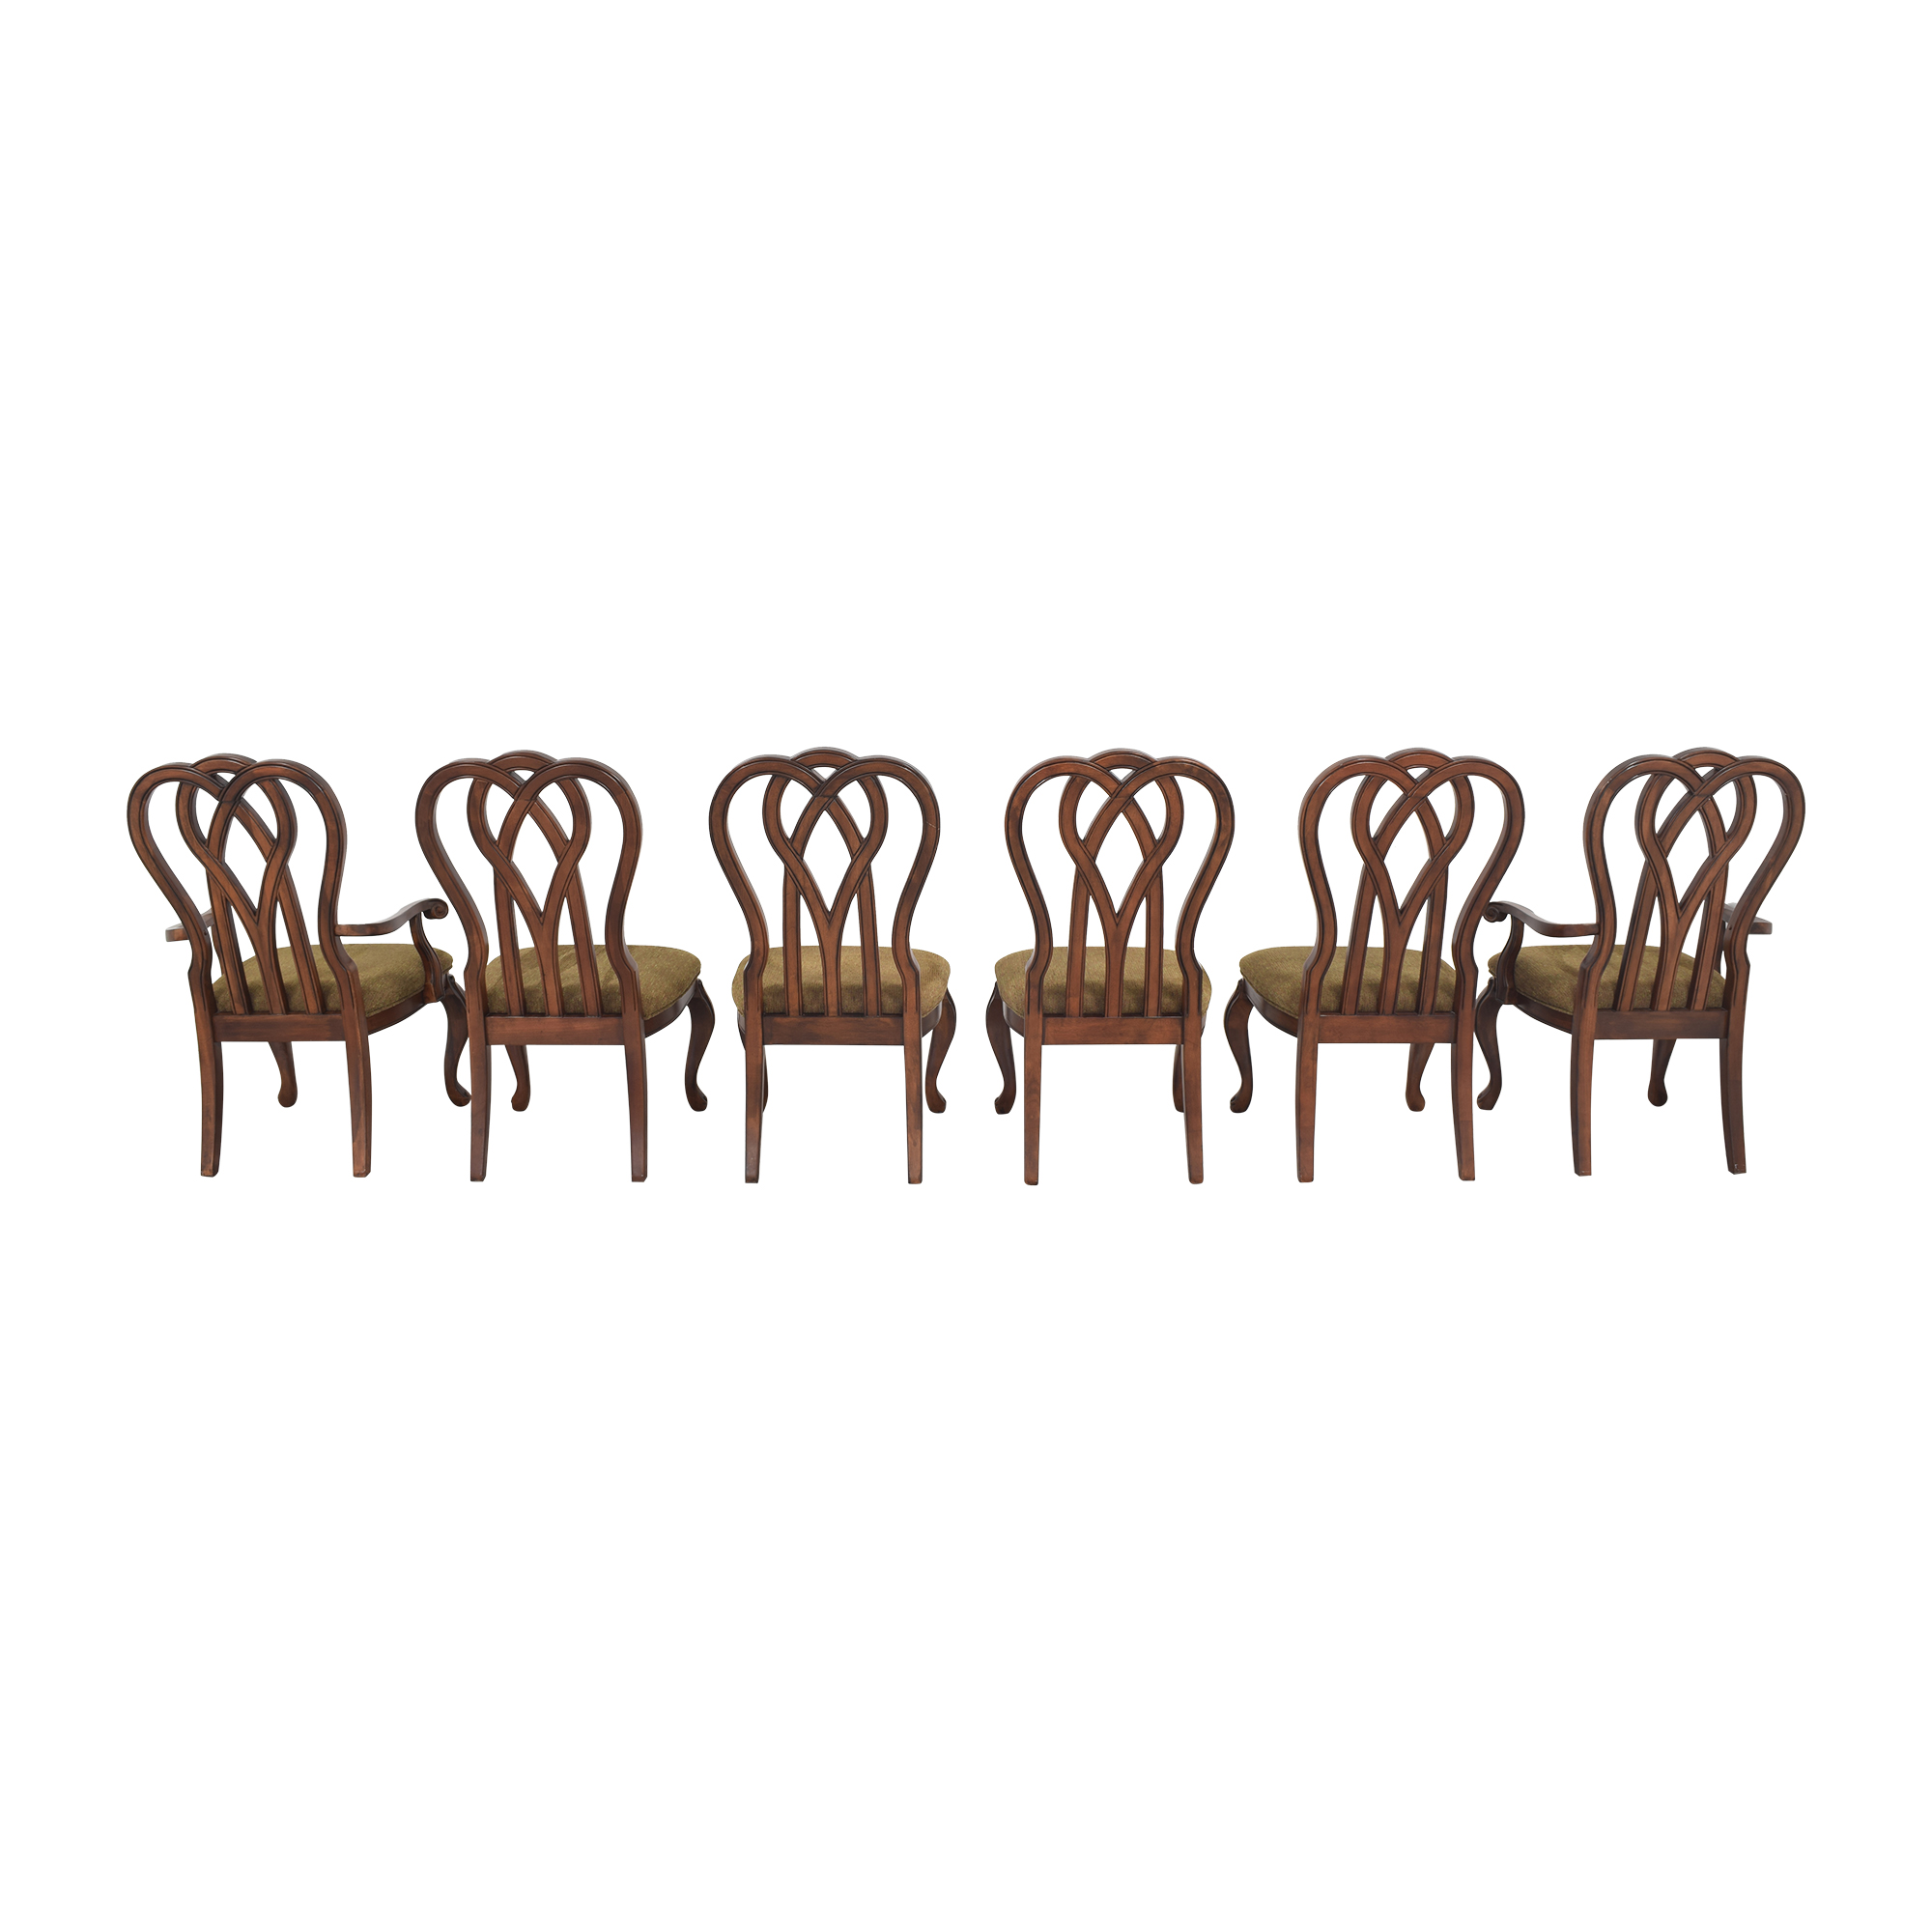 Legacy Classic Furniture Legacy Classic Furniture Ribbon Back Dining Chairs brown